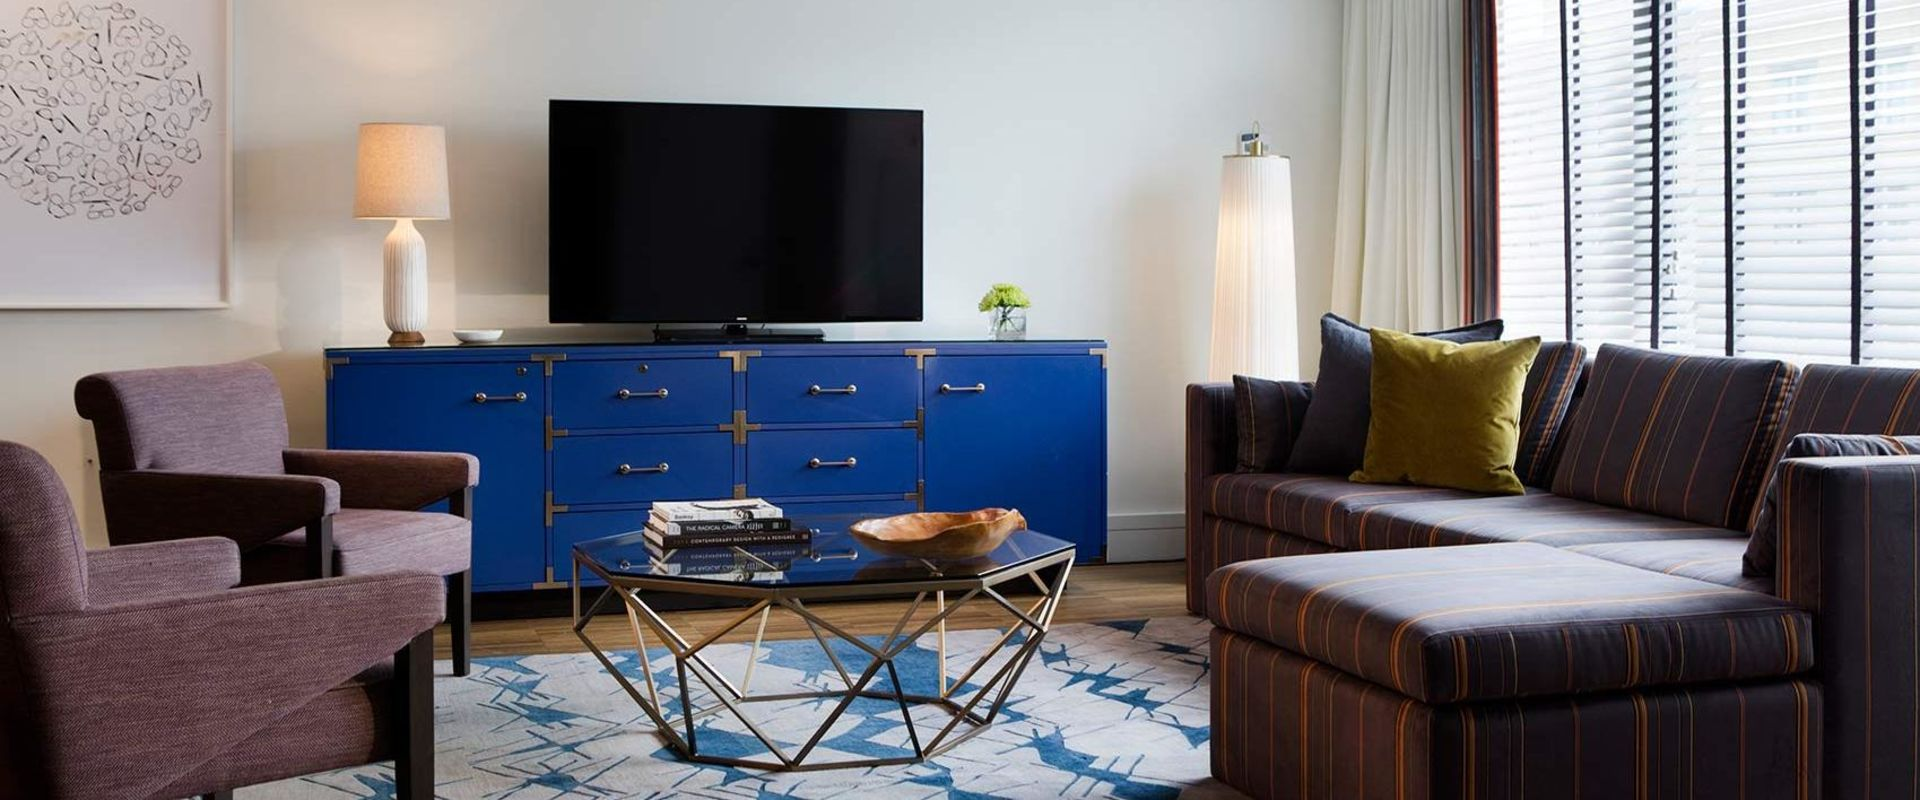 Dupont Circle Presidential Suite Seating and TV